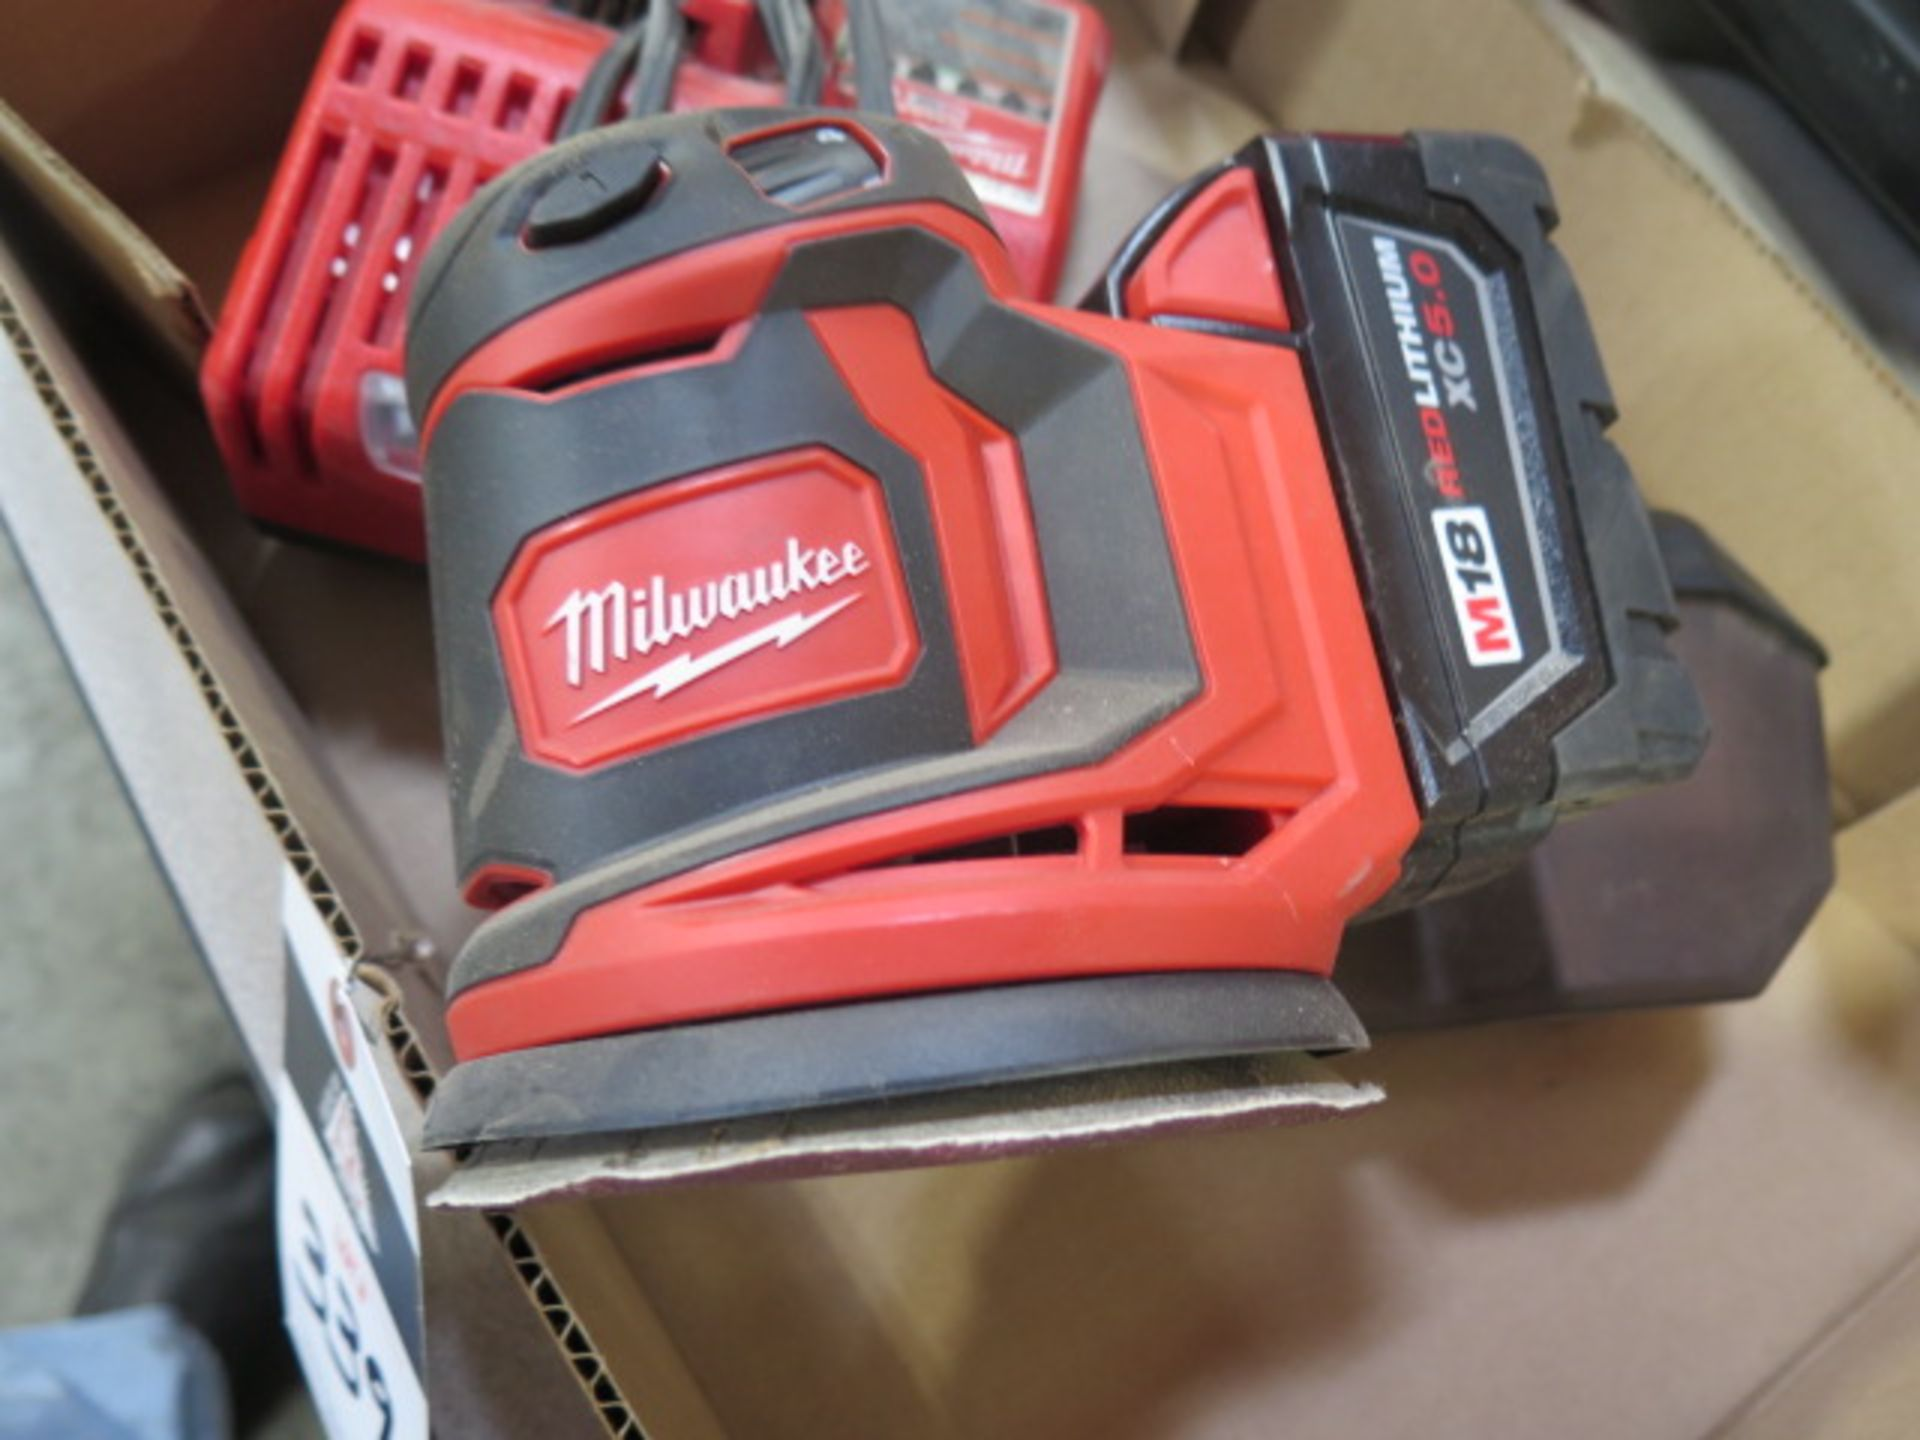 Milwaukee 18 Volt Orbital Sander w/ Charger (SOLD AS-IS - NO WARRANTY) - Image 5 of 6